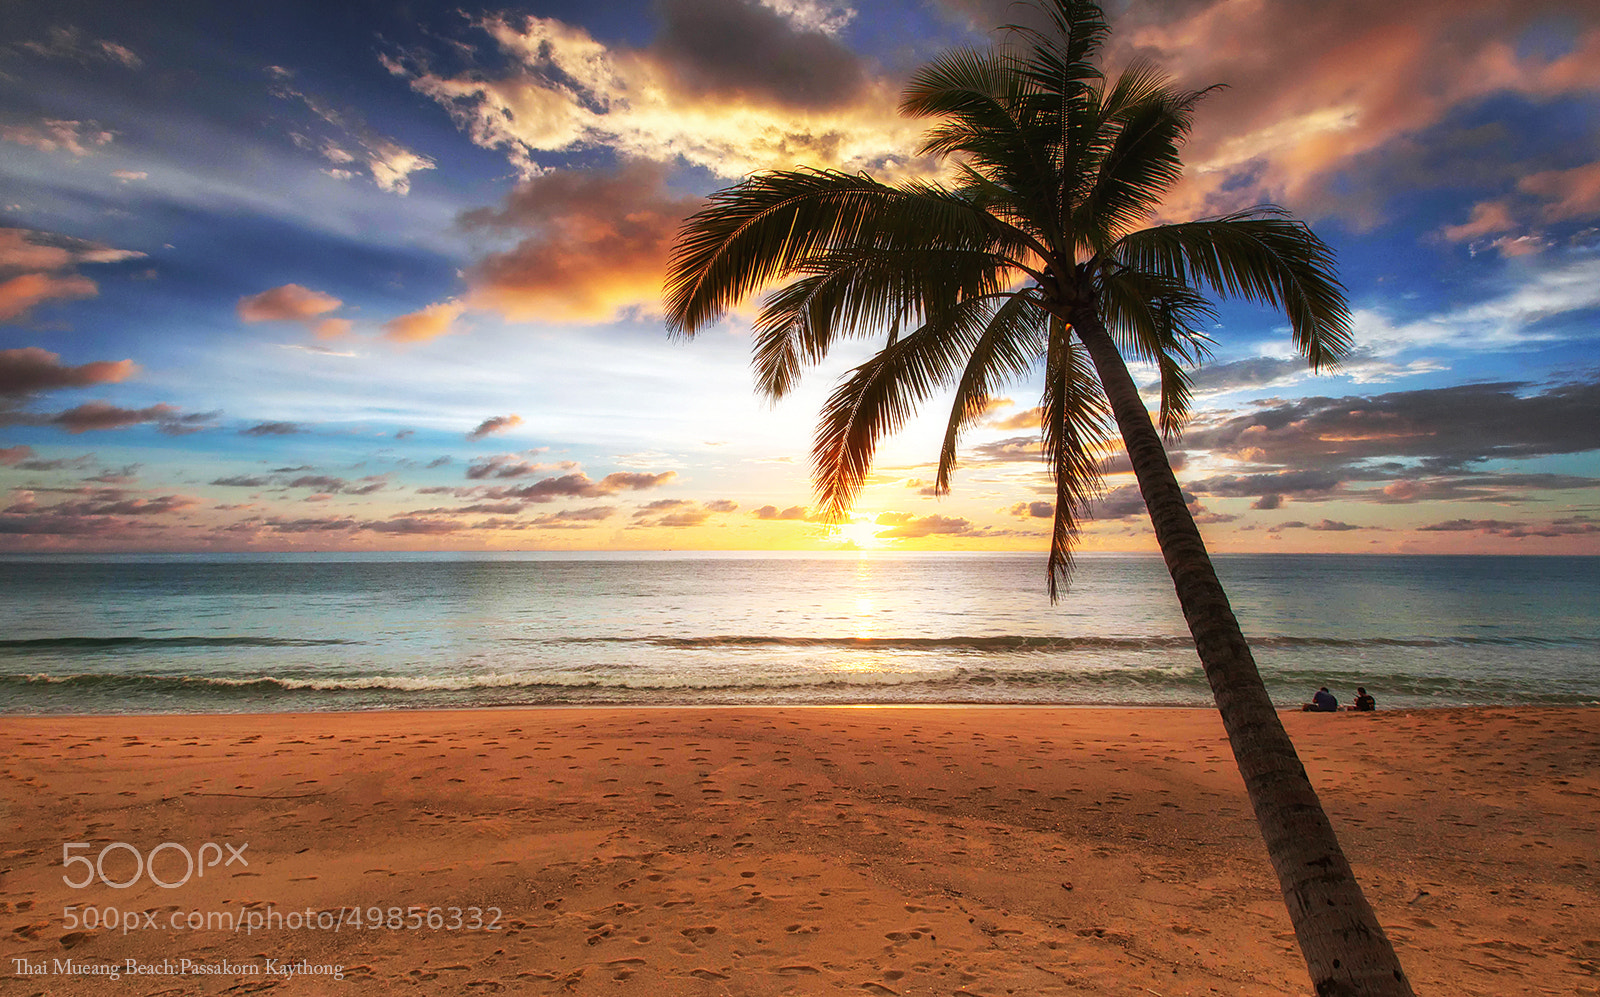 Photograph Thai Mueang Beach by Wazabi Bomb Bomb on 500px